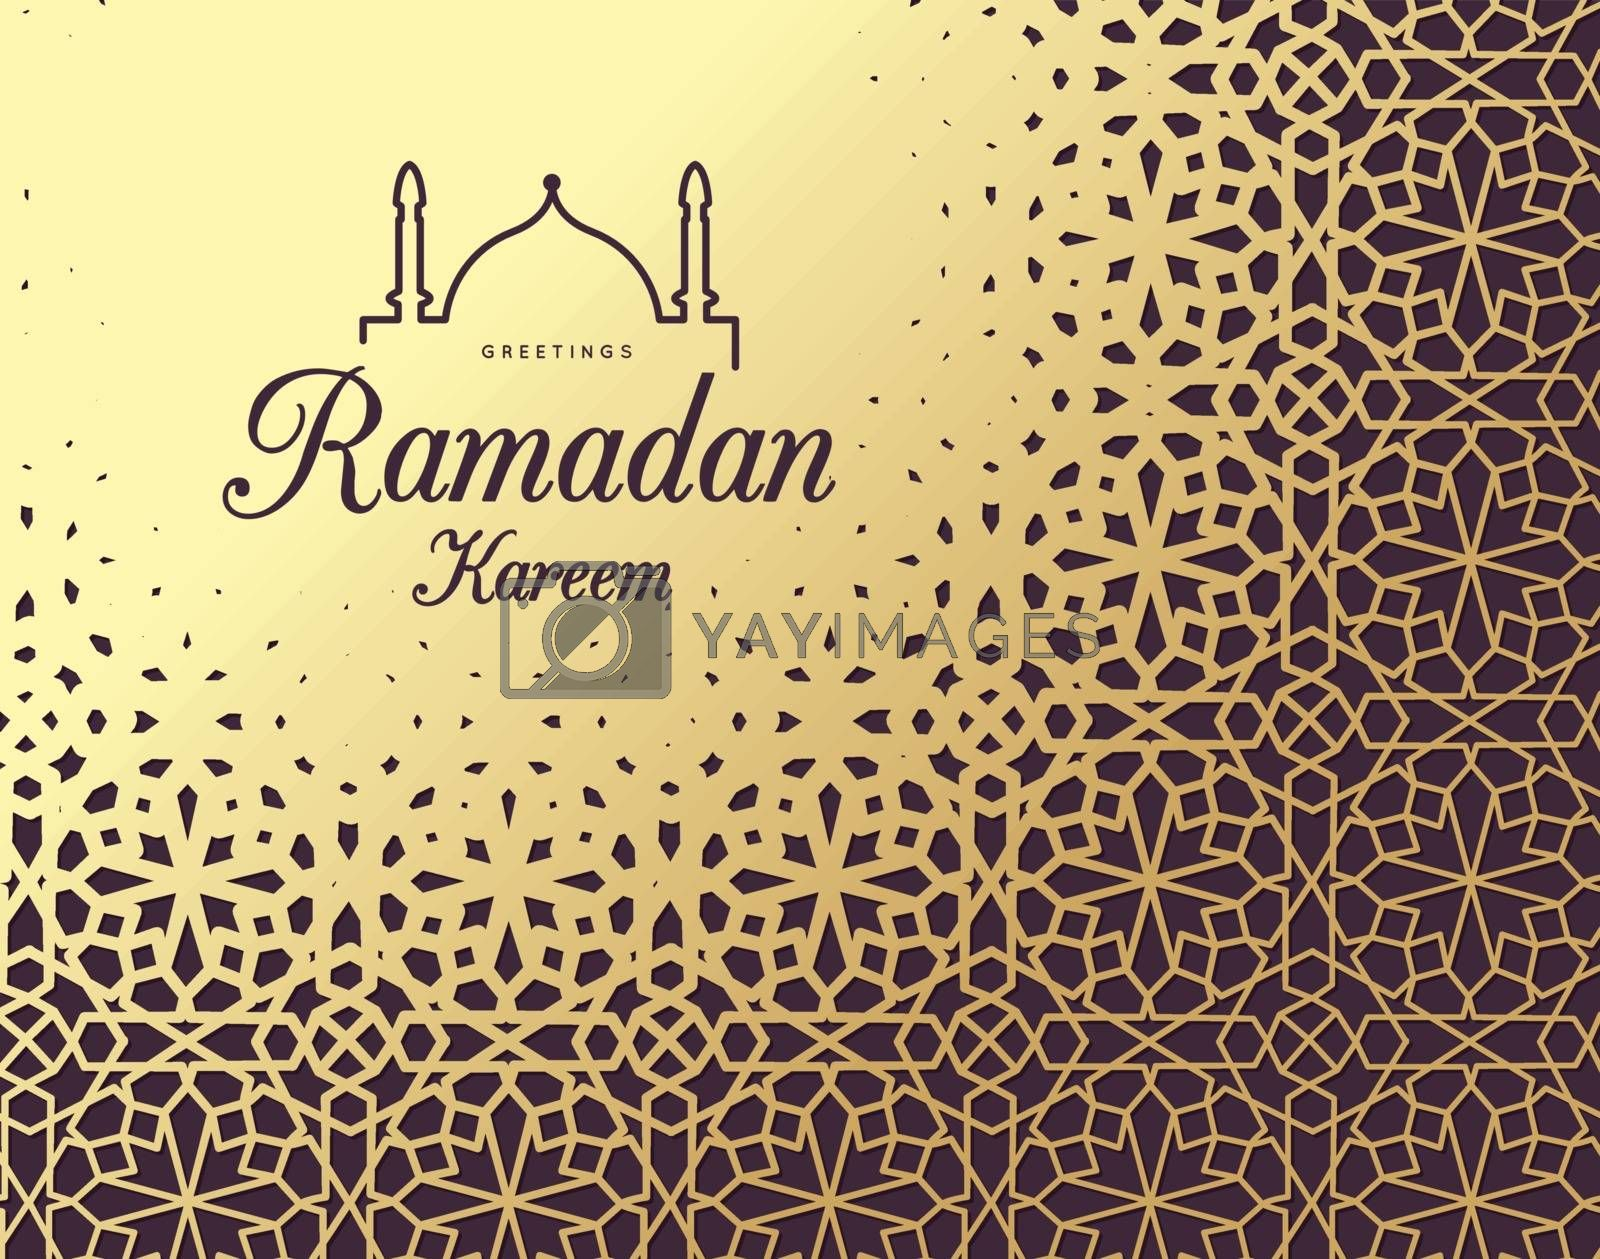 Ramadan Kareem. Congratulations on the holiday. Vector illustration